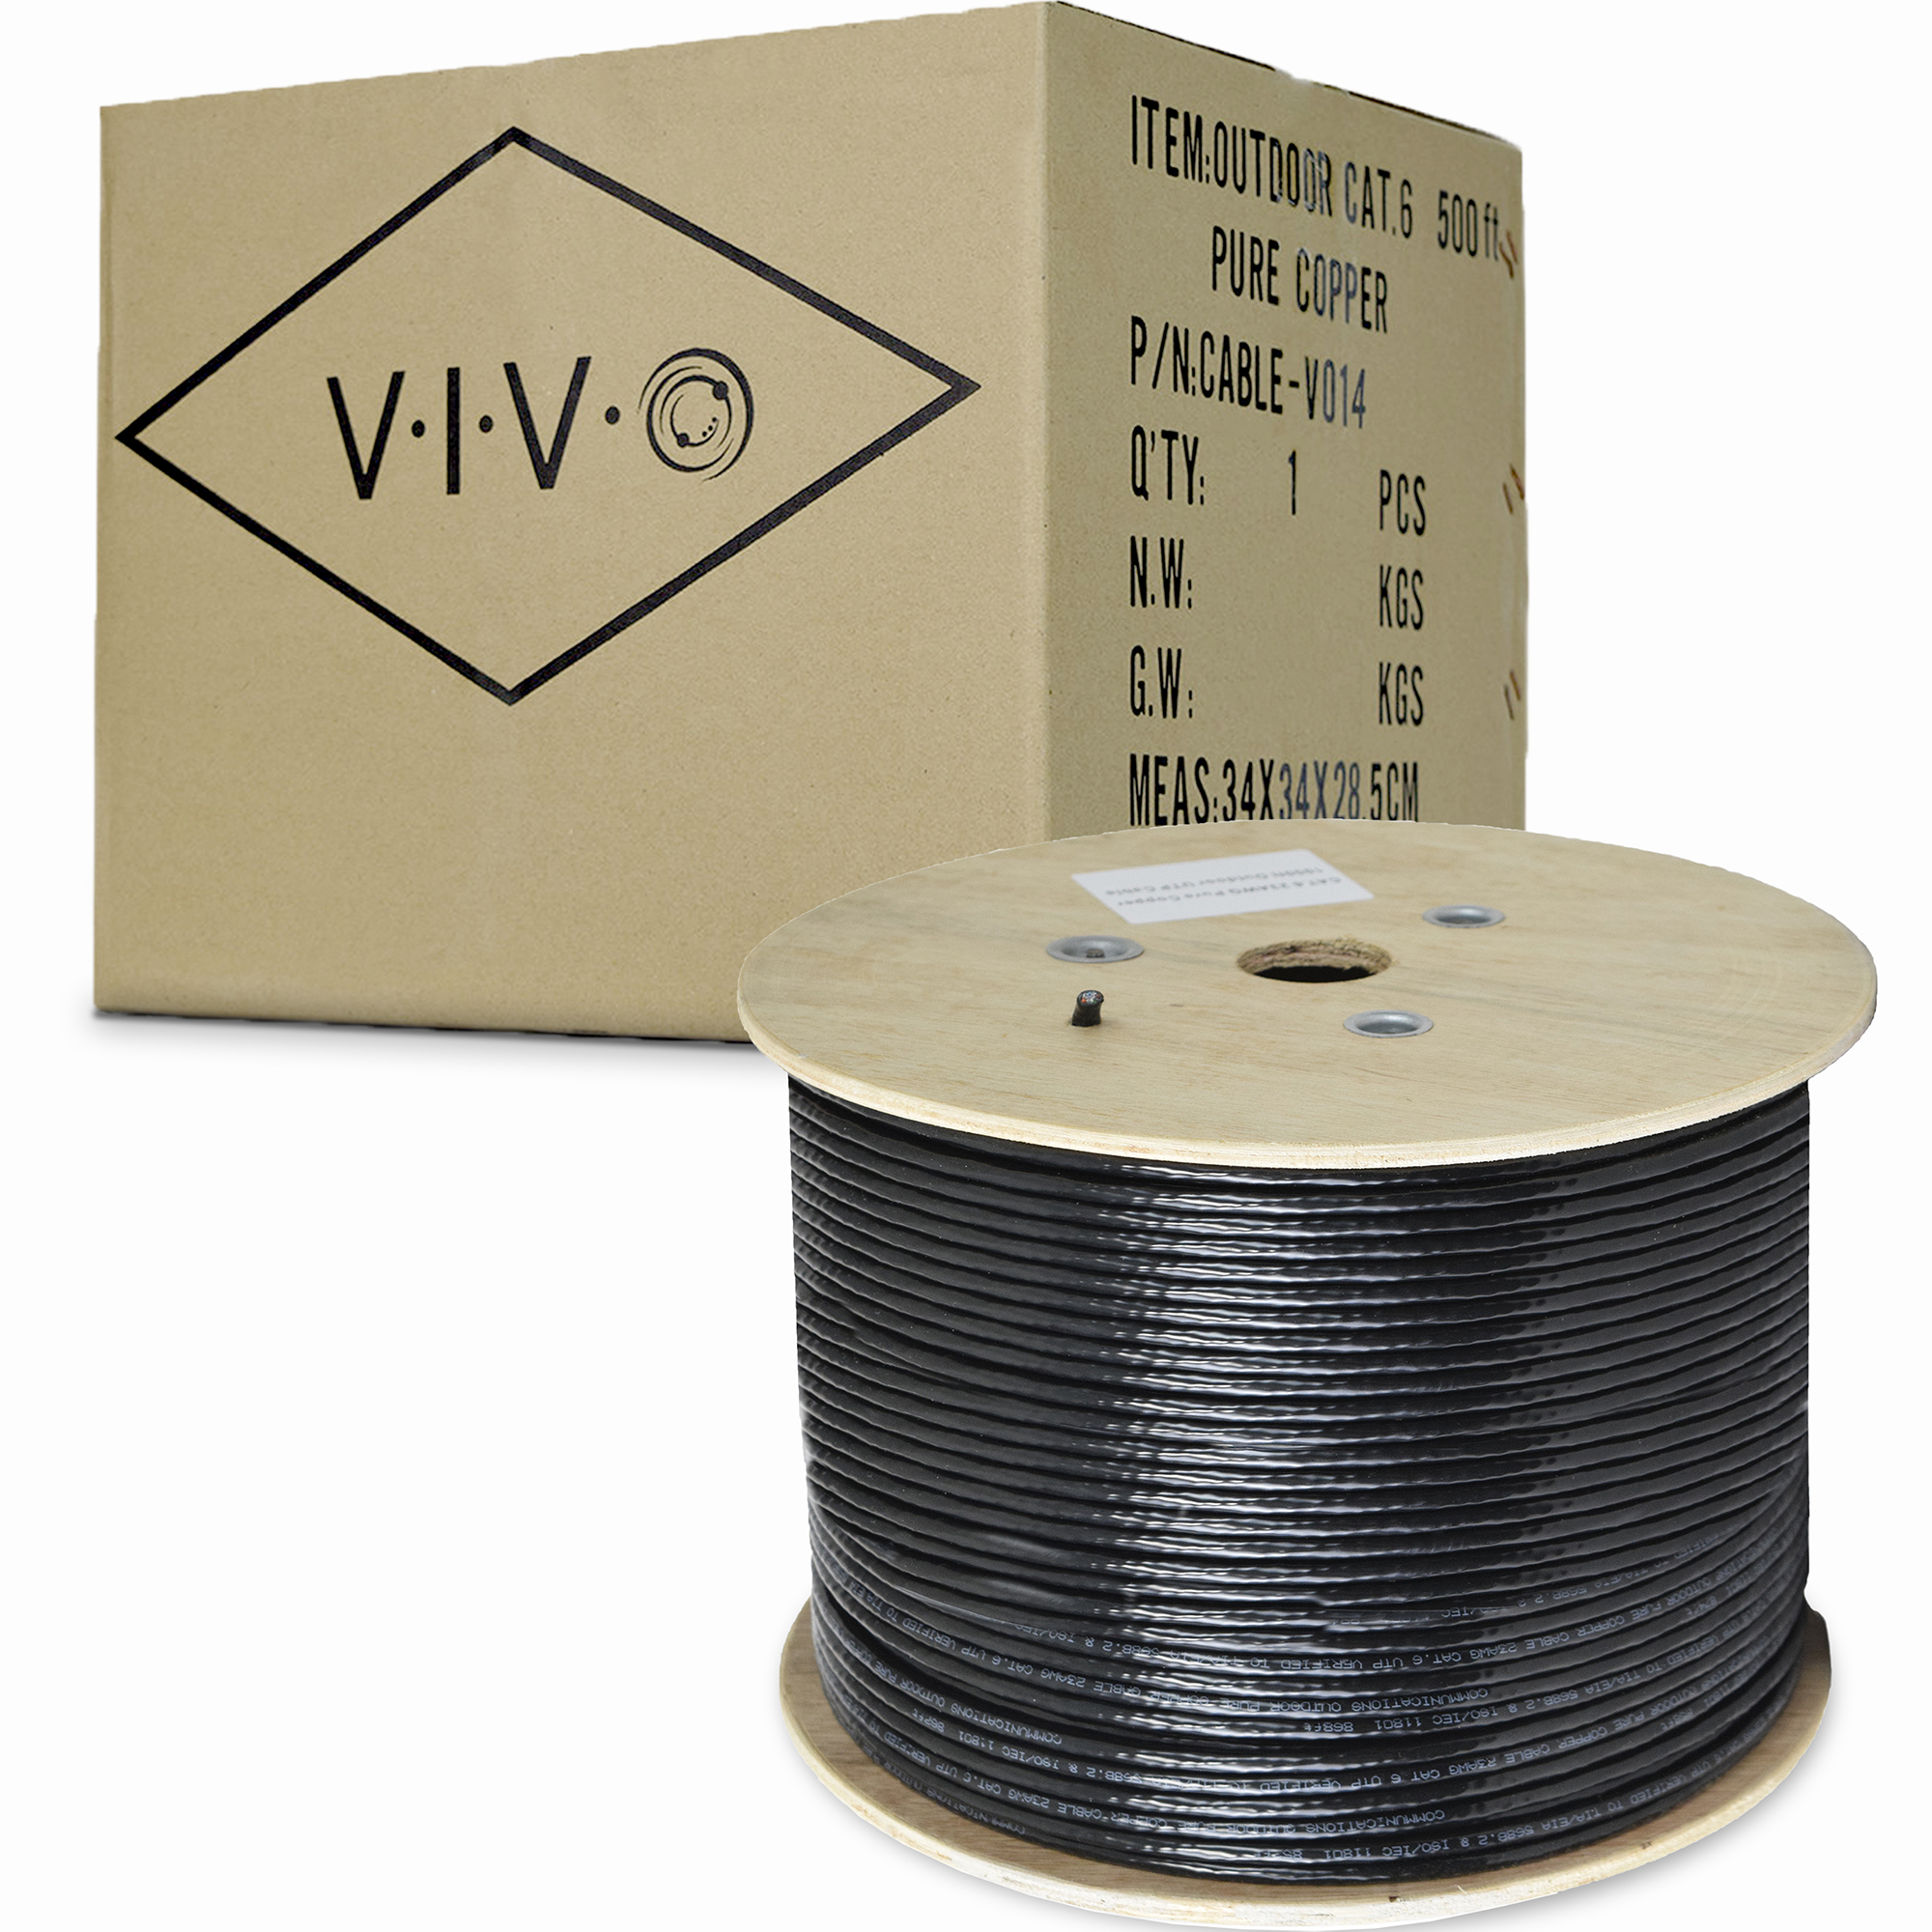 VIVO Black 500ft Cat6 Pure Copper 23 AWG LAN Cable Wire Cat-6 500 ft Waterproof Outdoor Burial (CABLE-V014)